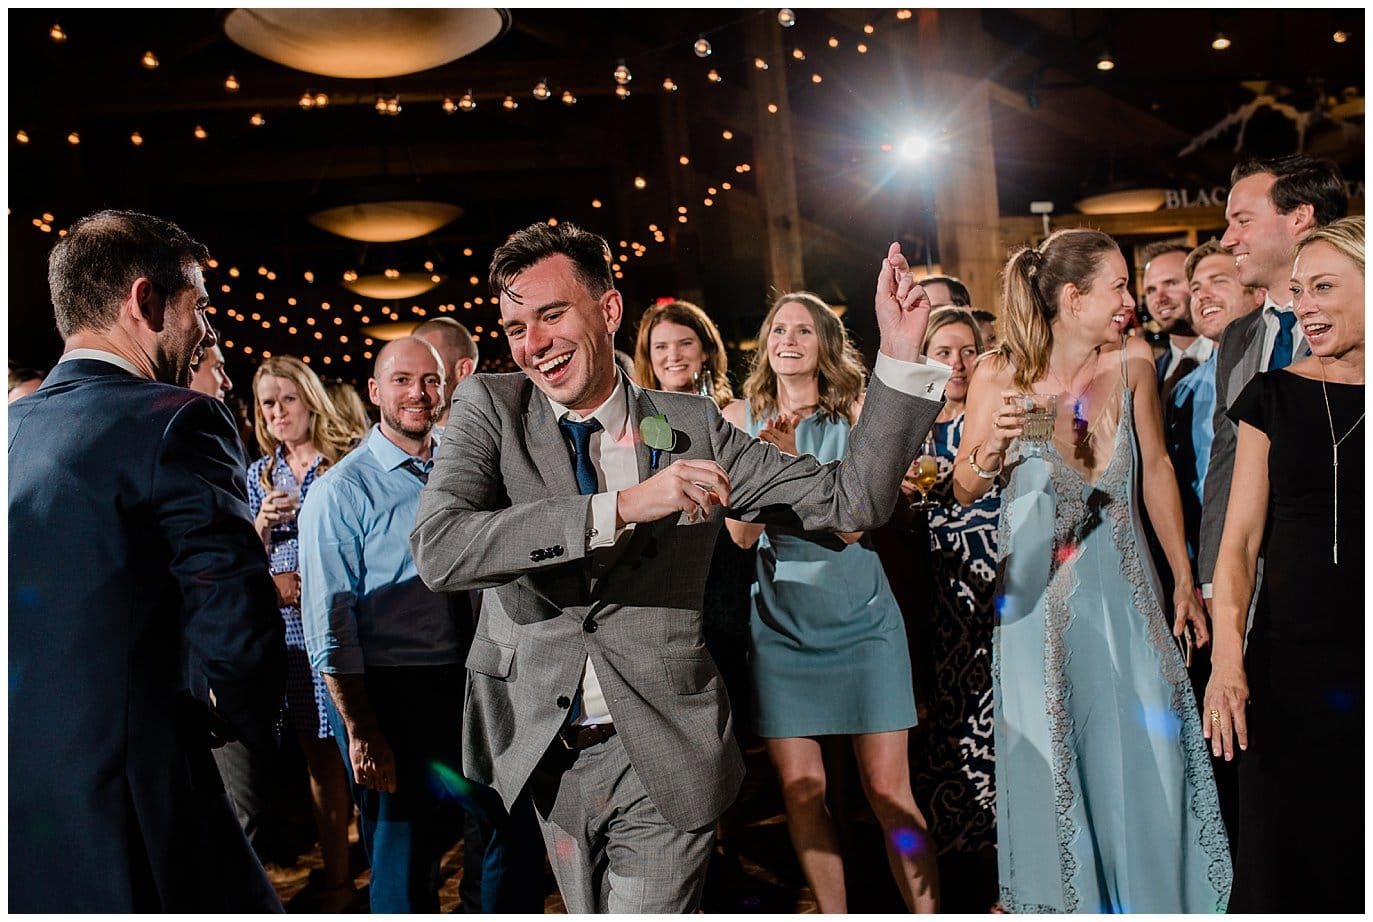 Guests dancing at Arapahoe Basin Black Mountain Lodge Wedding by Dillon Wedding Photographer Jennie Crate